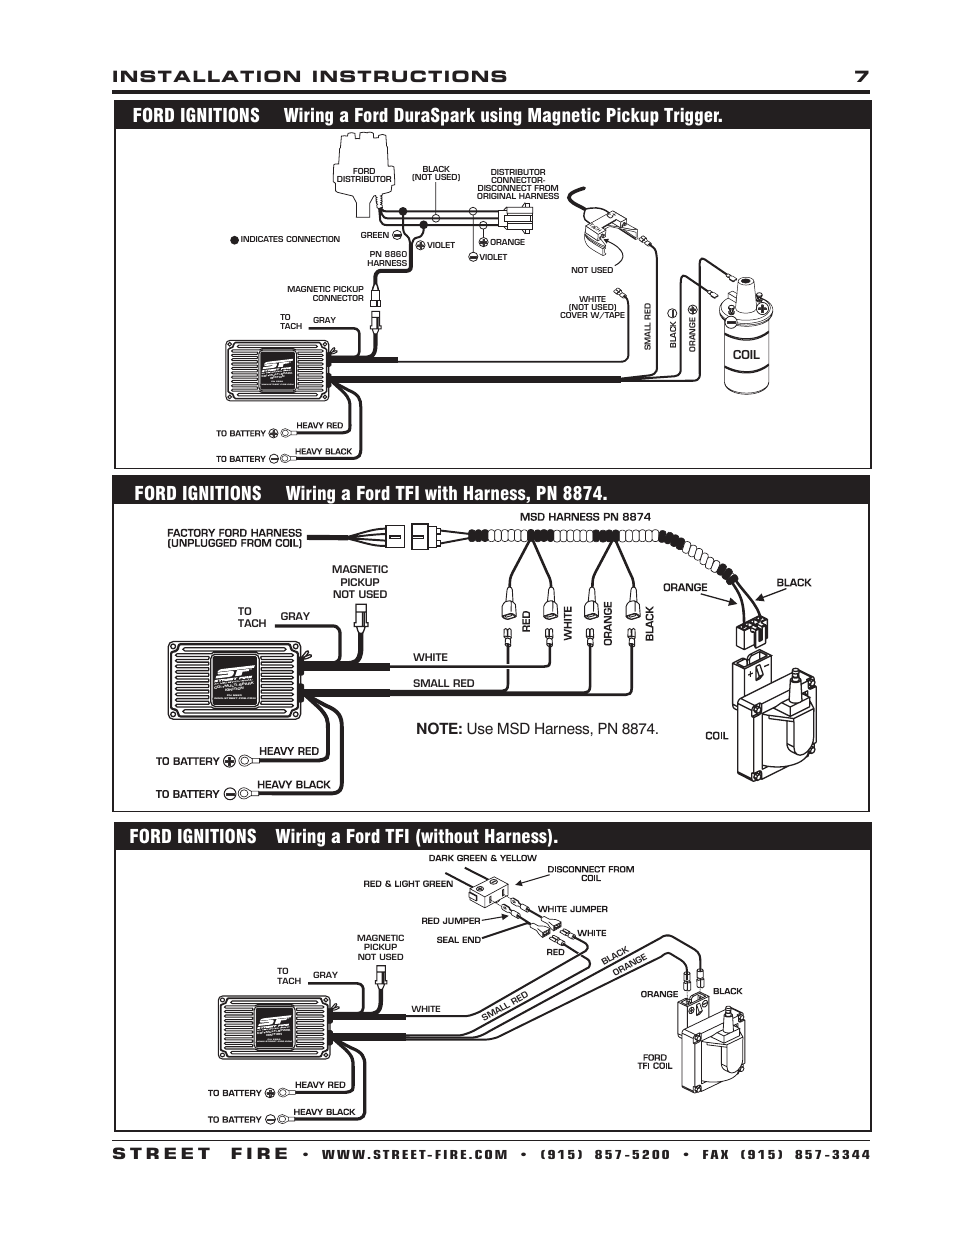 msd street fire wiring diagram free download \u2022 oasis dl co  msd street fire wiring diagram somurich com msd street fire ignition box wiring diagram at msd